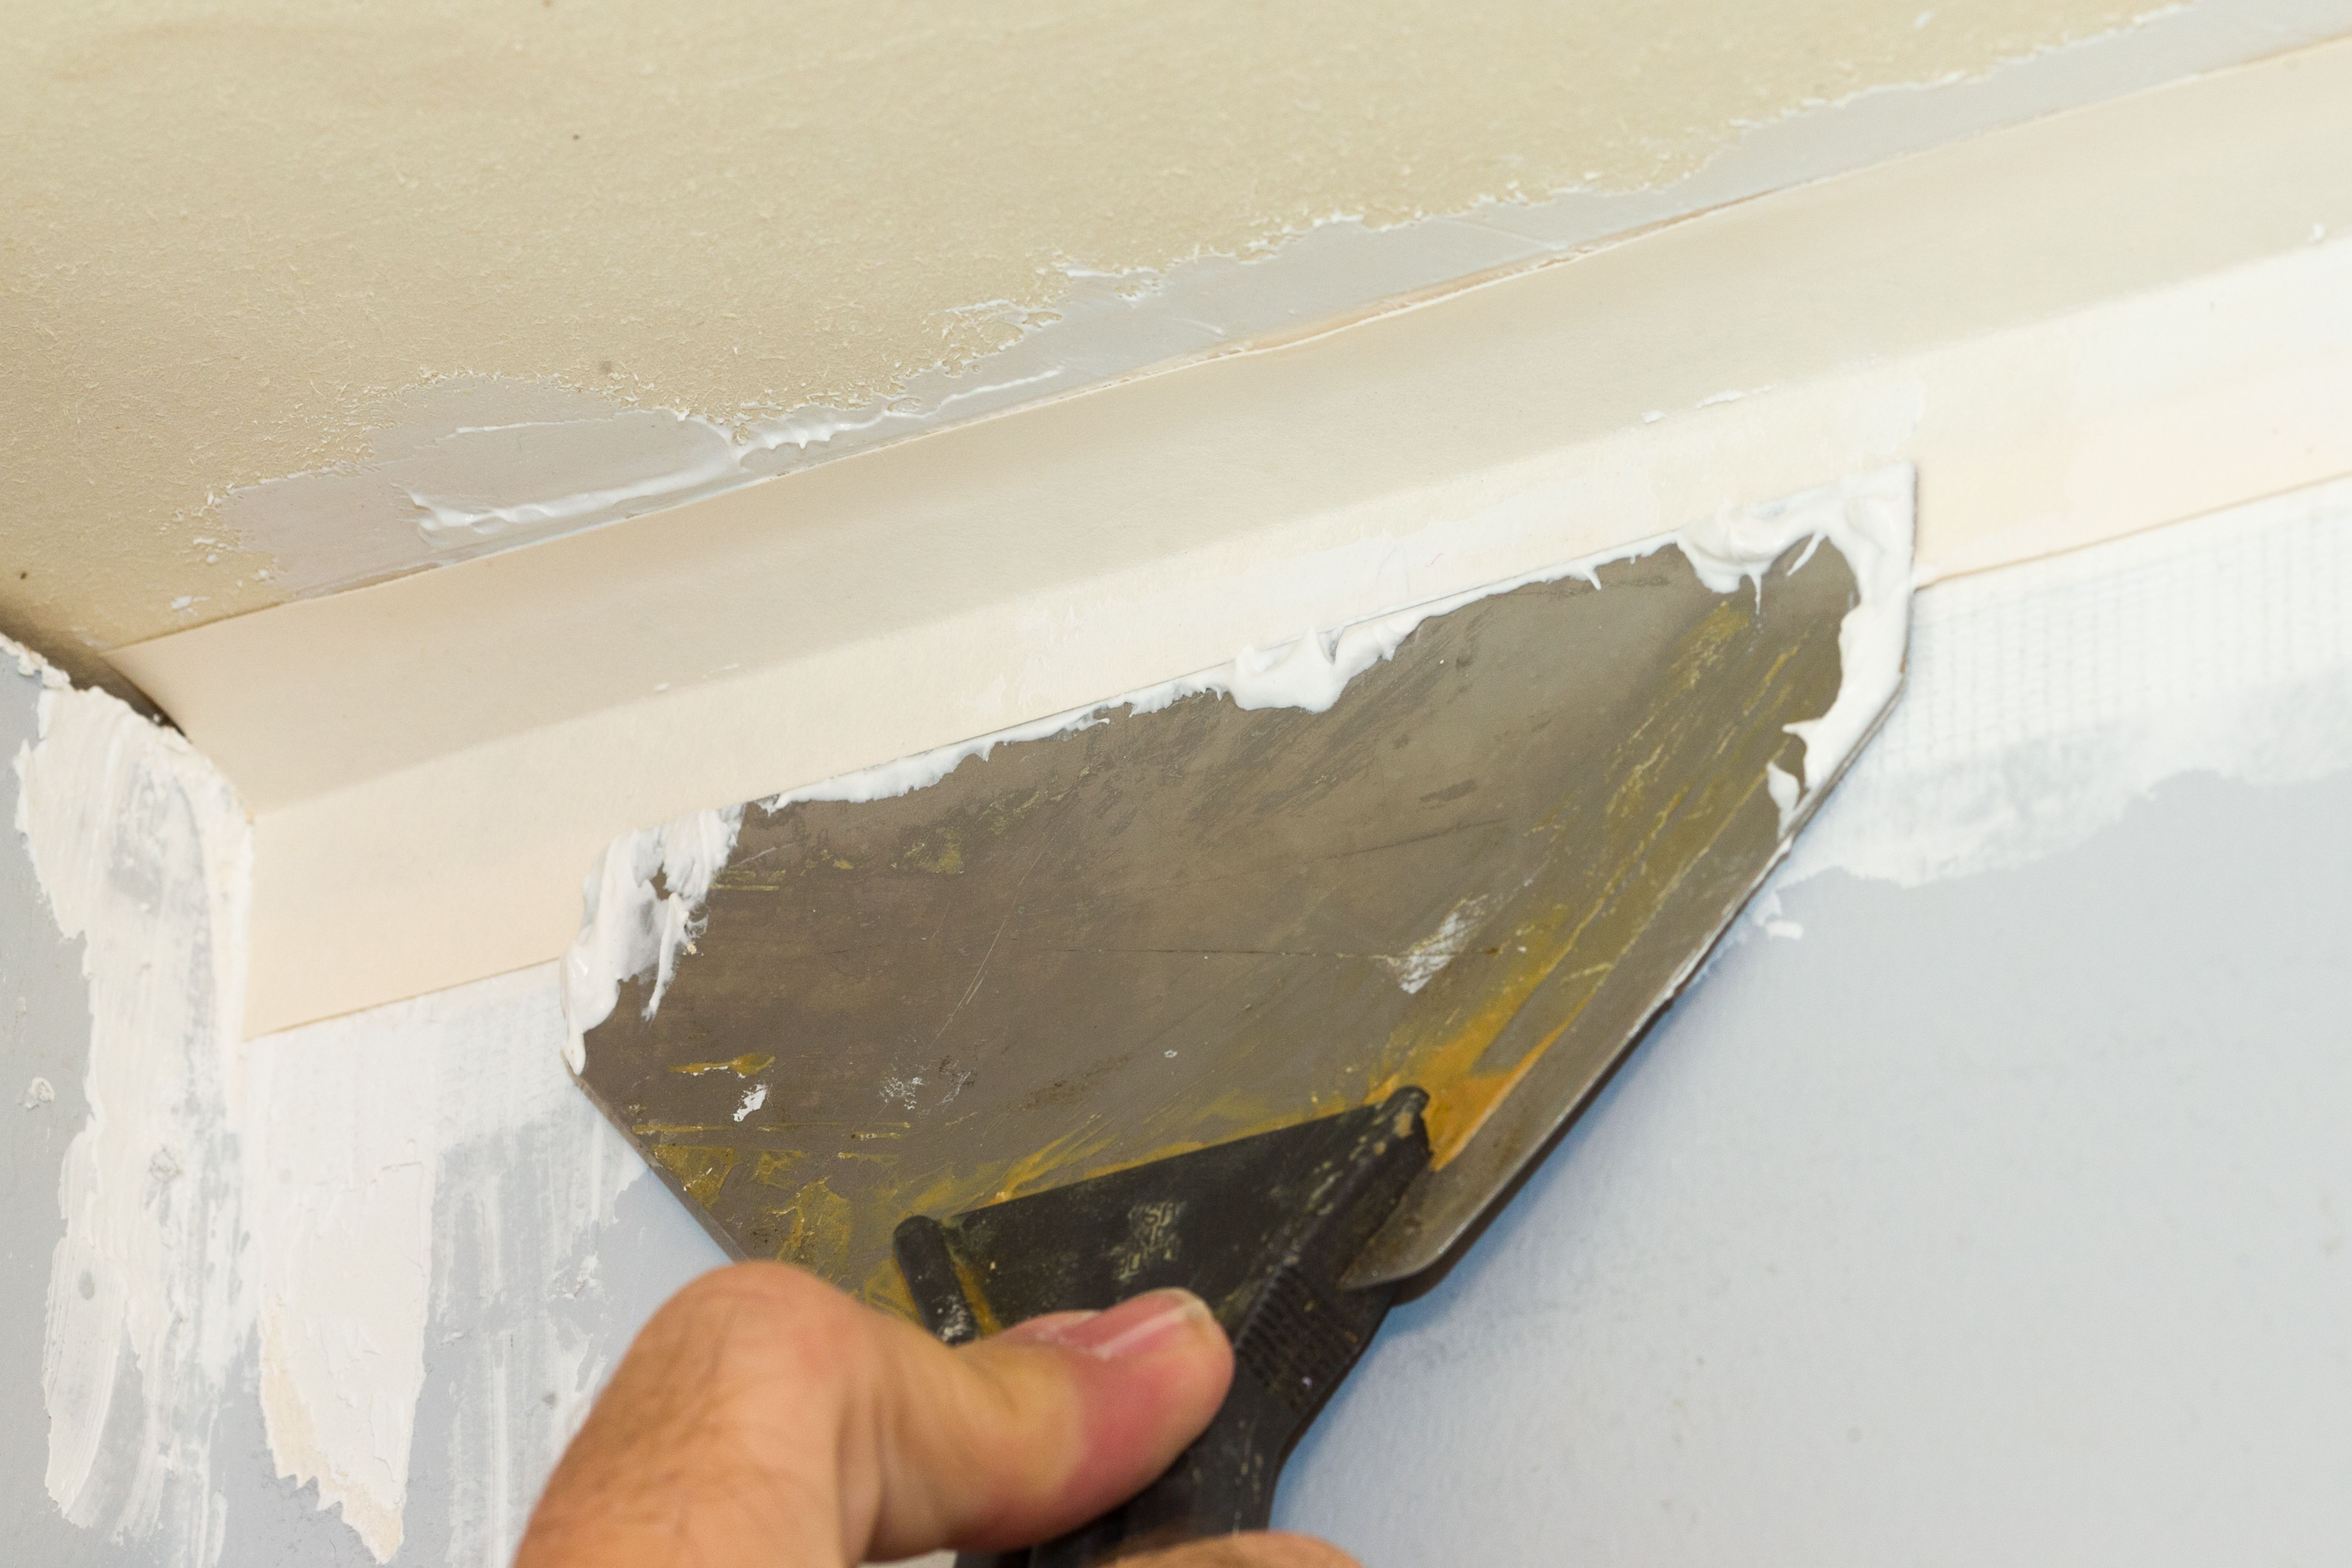 How To Fill A Gap Between The Wall The Ceiling Hunker Repair Ceilings Drywall Repair Ceiling Drywall Repair